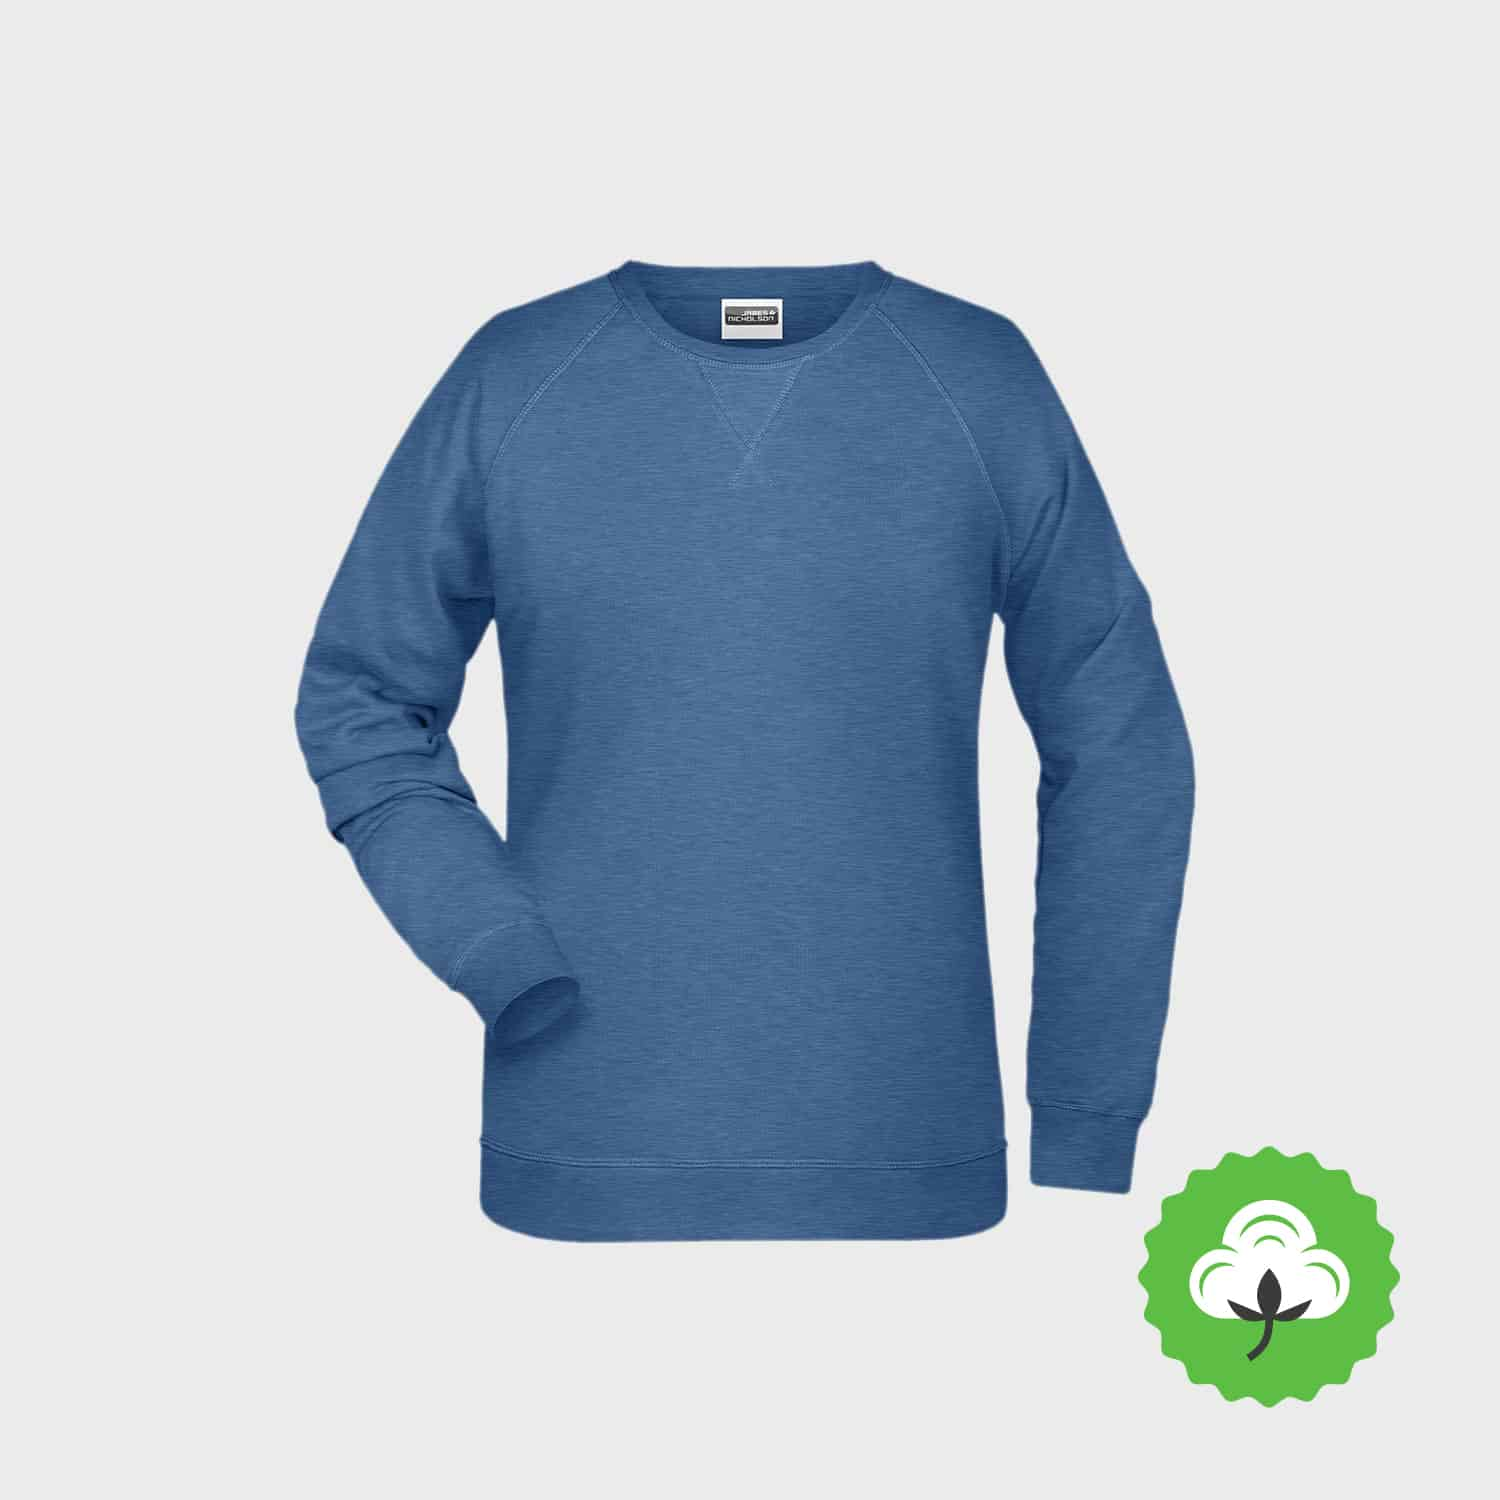 Bio-Sweatshirt-besticken-StickManufaktur